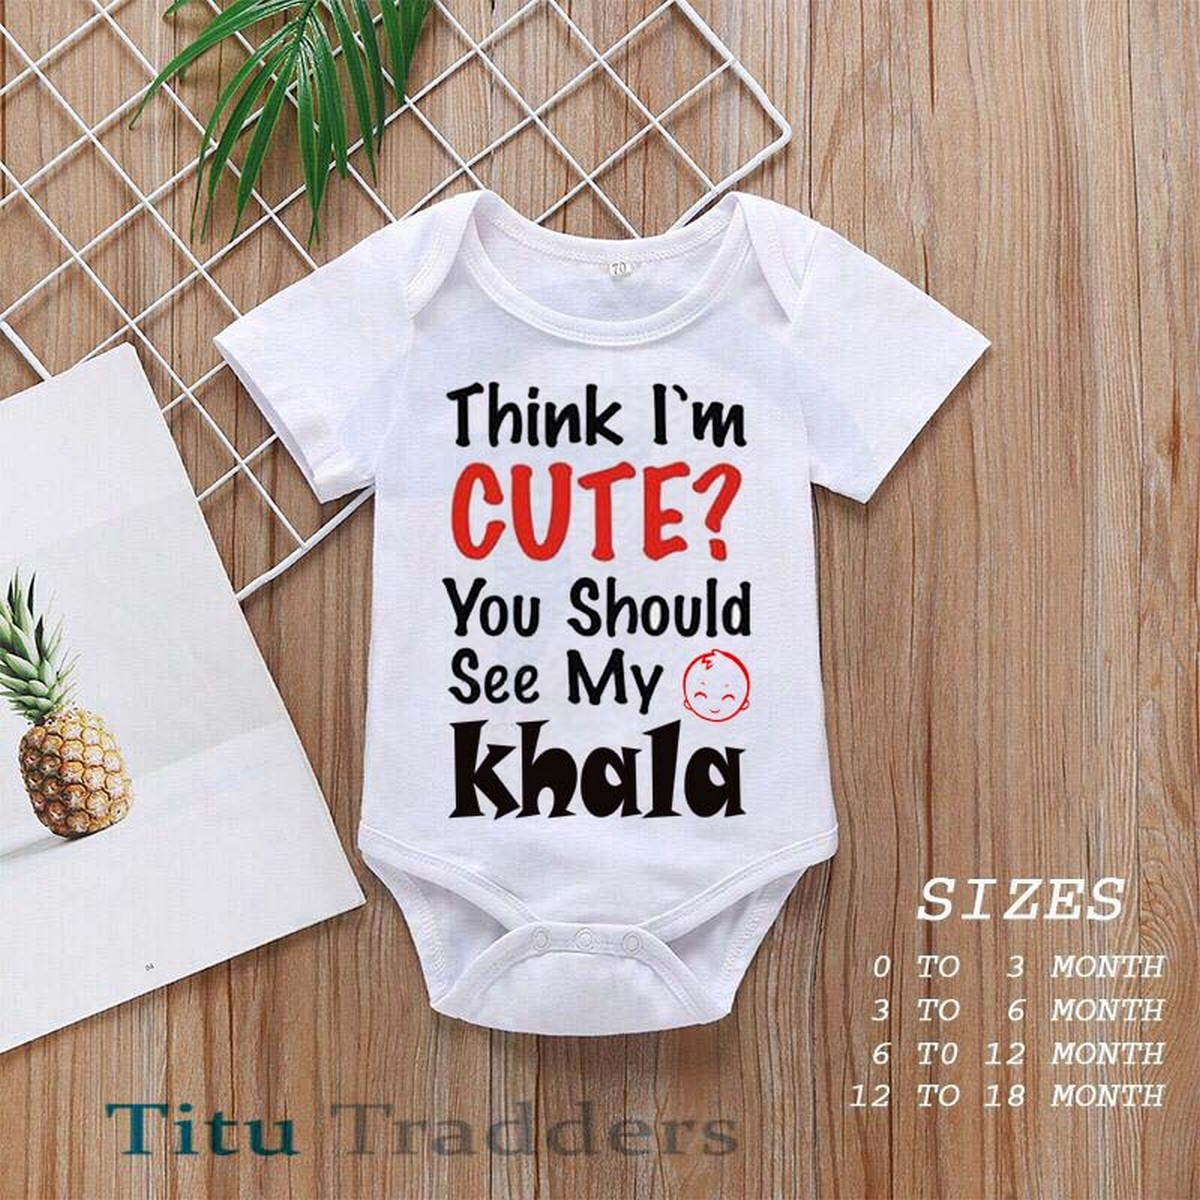 Baby Girls and Boys Half Sleeves Cotton Body suits Newborn to 18 Months, Baby Romper  (Cute Khala 25)